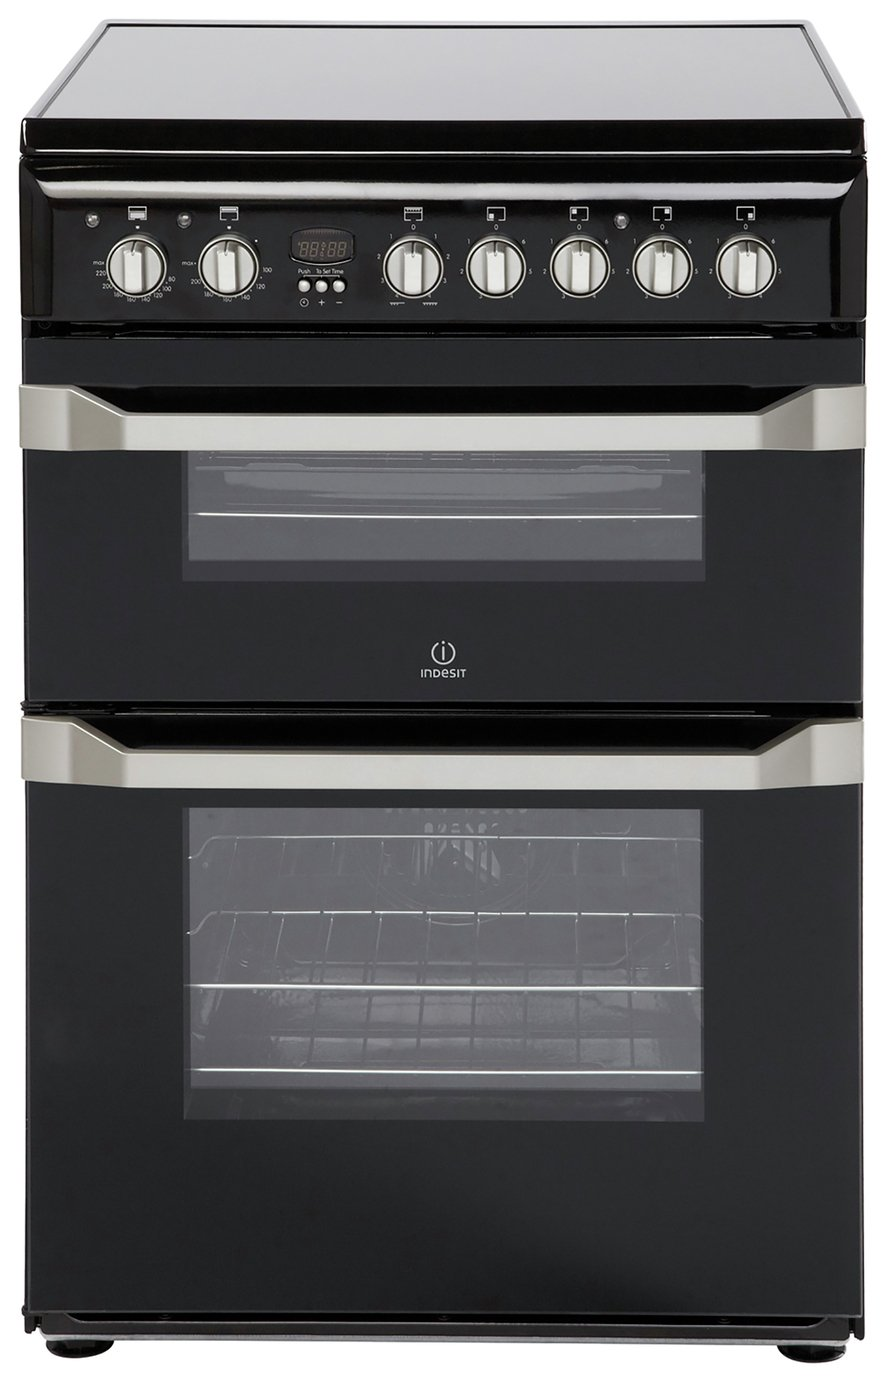 Indesit ID60C2 60cm Double Oven Electric Cooker - Black Best Price, Cheapest Prices